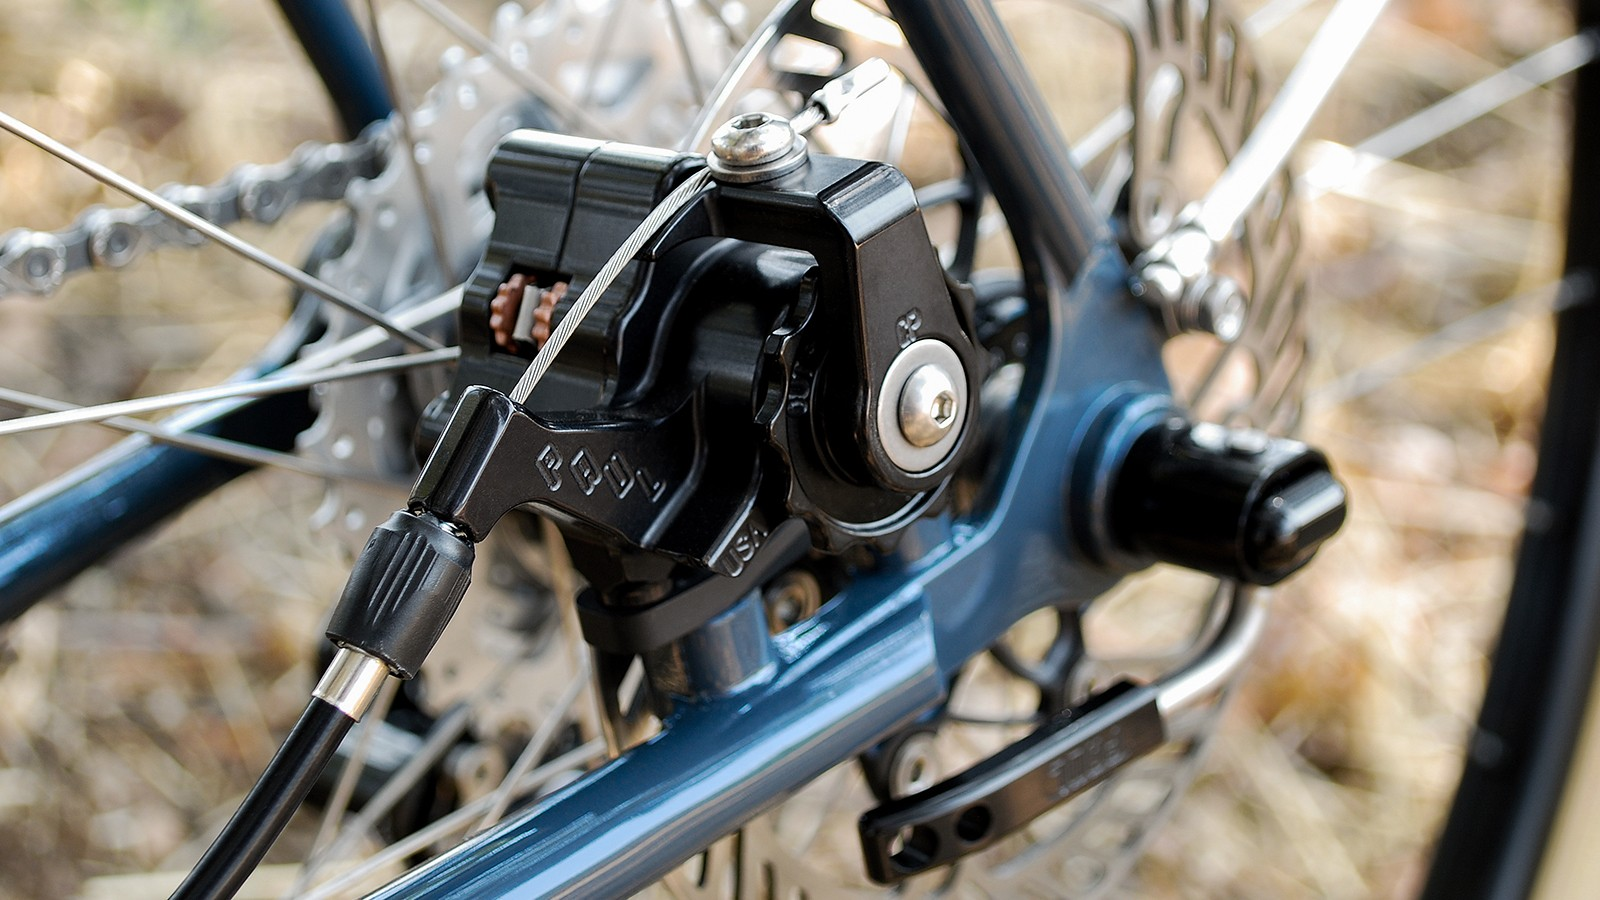 Add a touch of class to your ride with the Paul Klamper